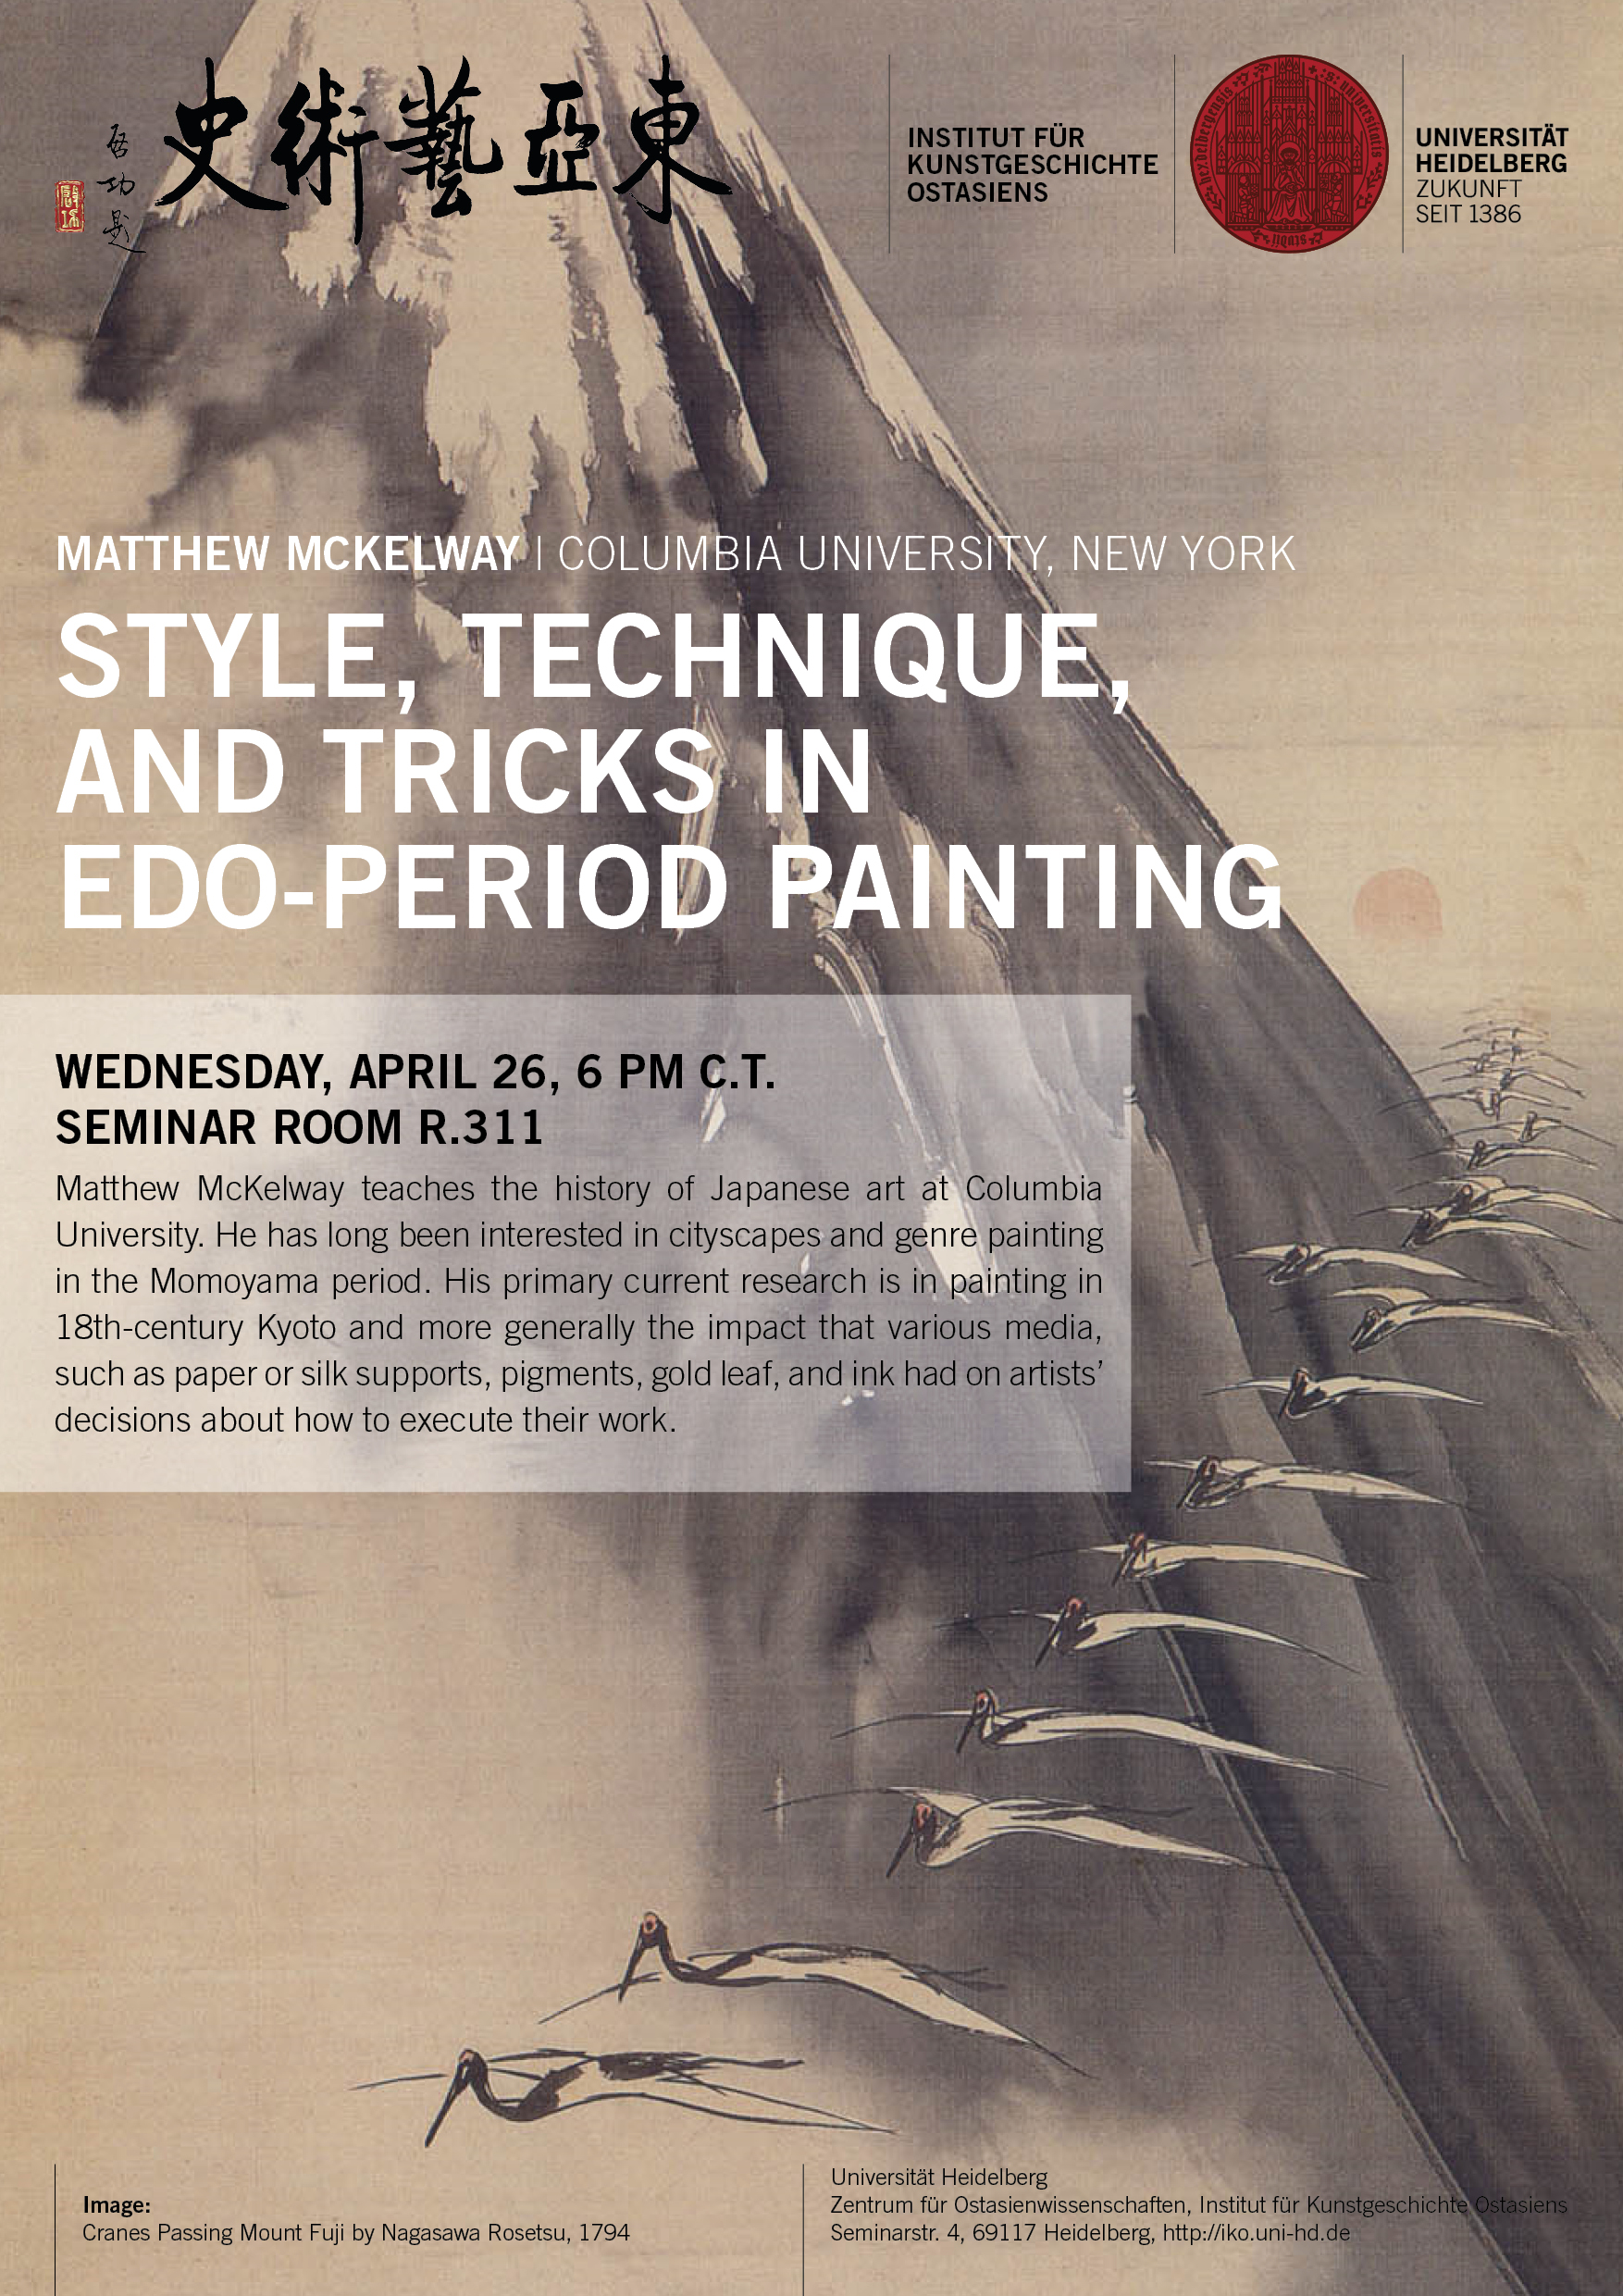 26. April 2017 | Matthew McKelway: Style, Technique, and Tricks in Edo-Period Painting